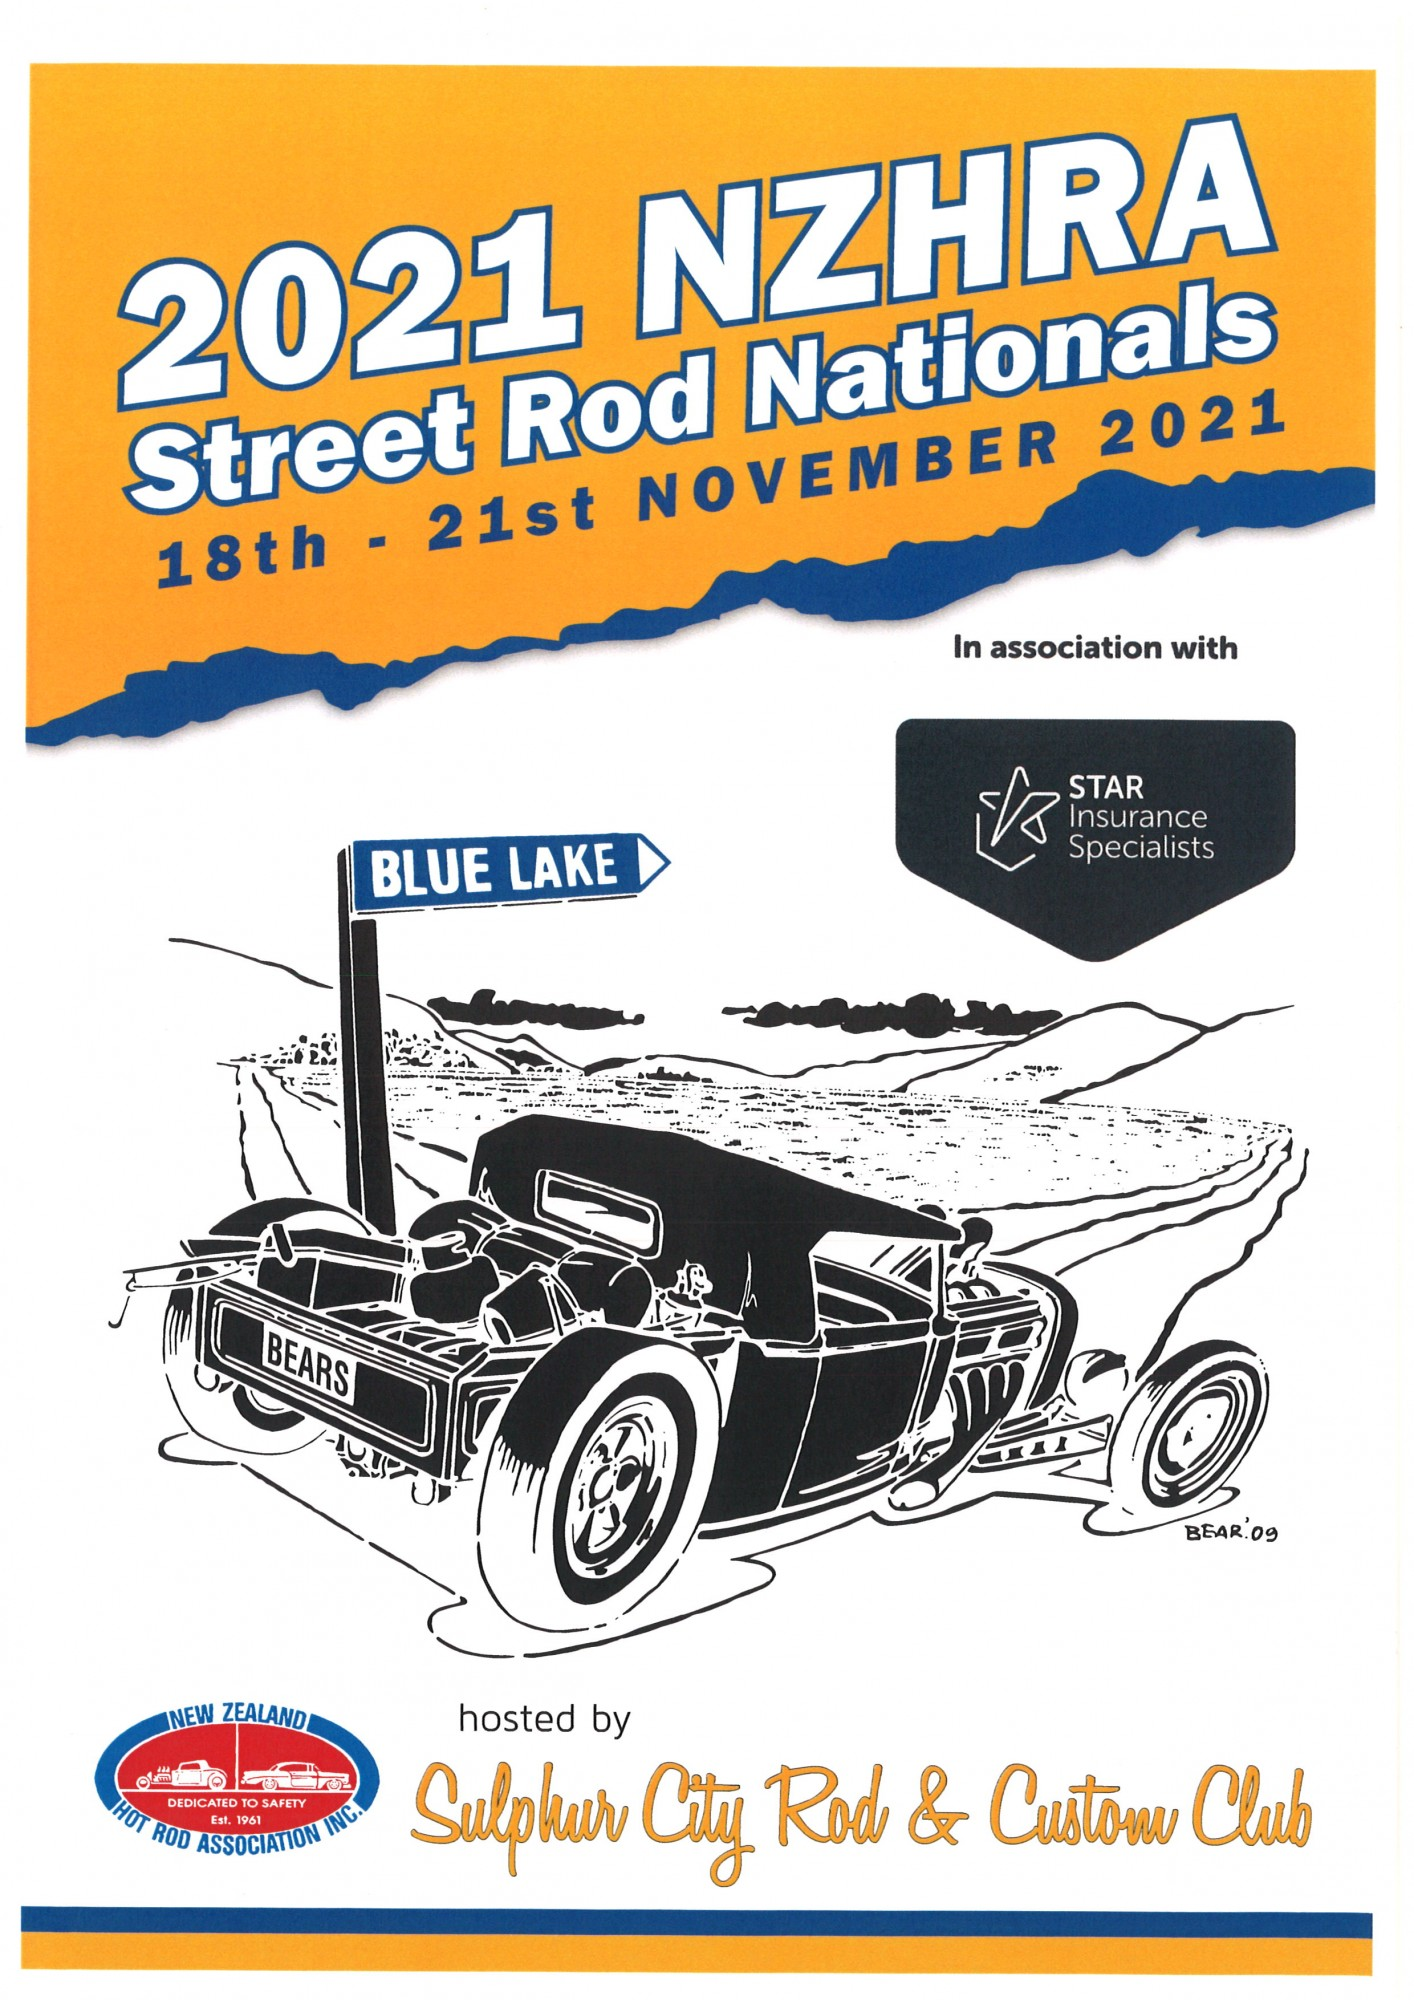 2021 NZHRA Street Rod Nationals